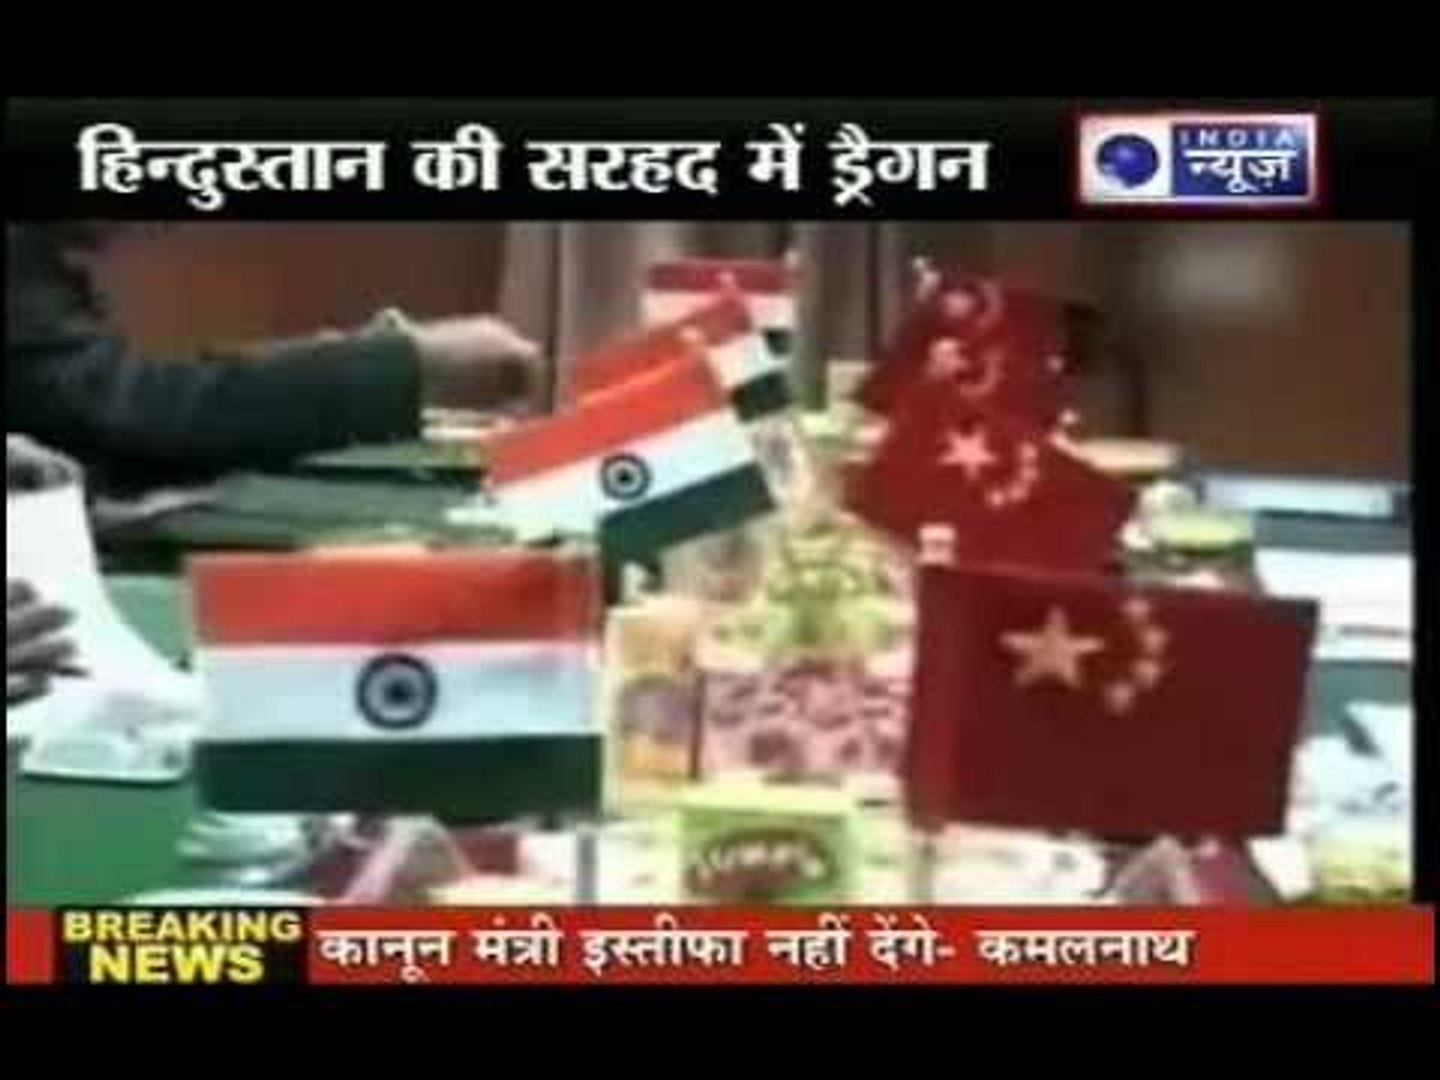 India News: Chinese army sets up camp inside India